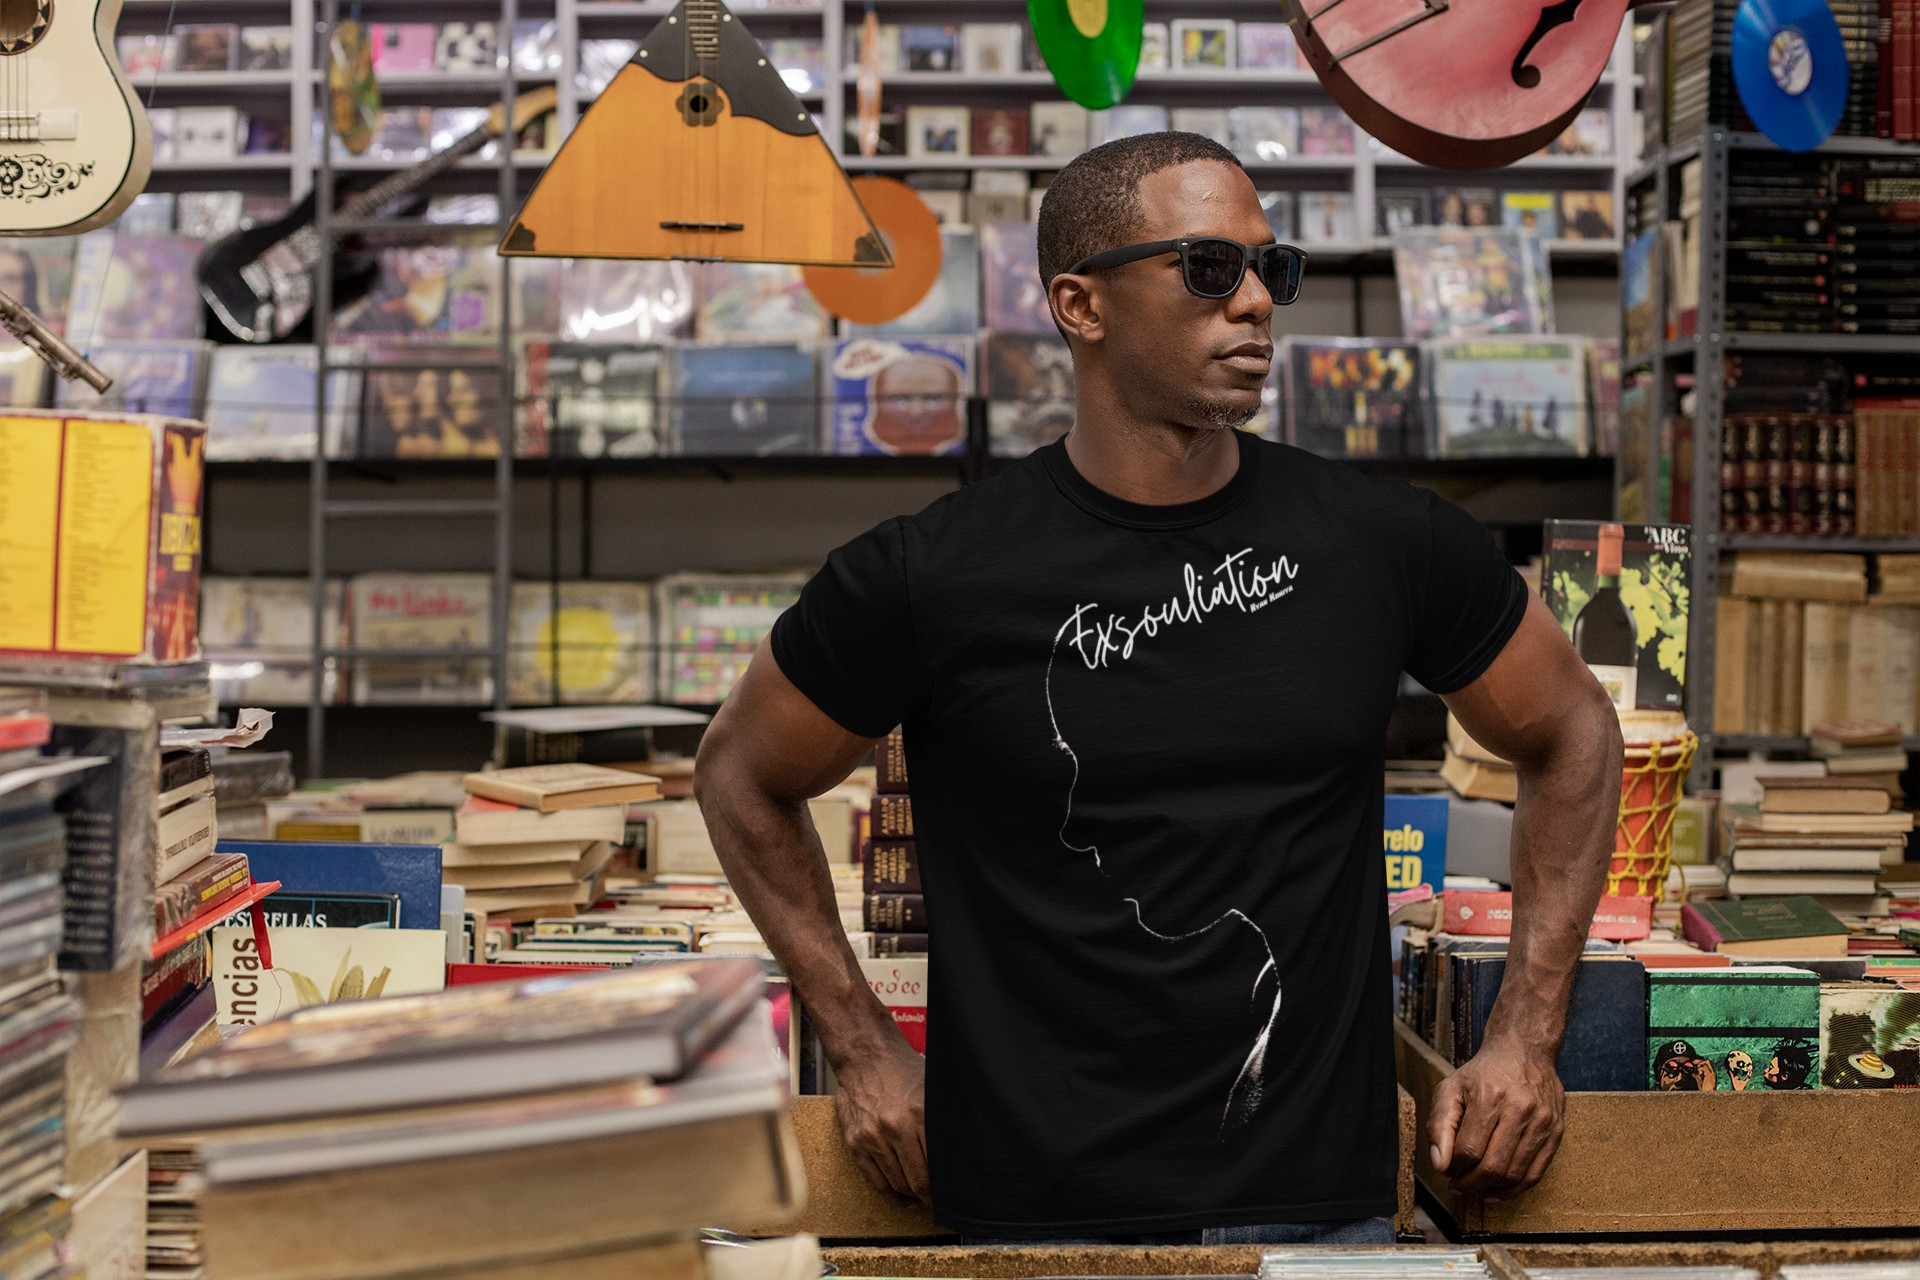 Handsome African man with shades wearing an Exsouliation T-Shirt